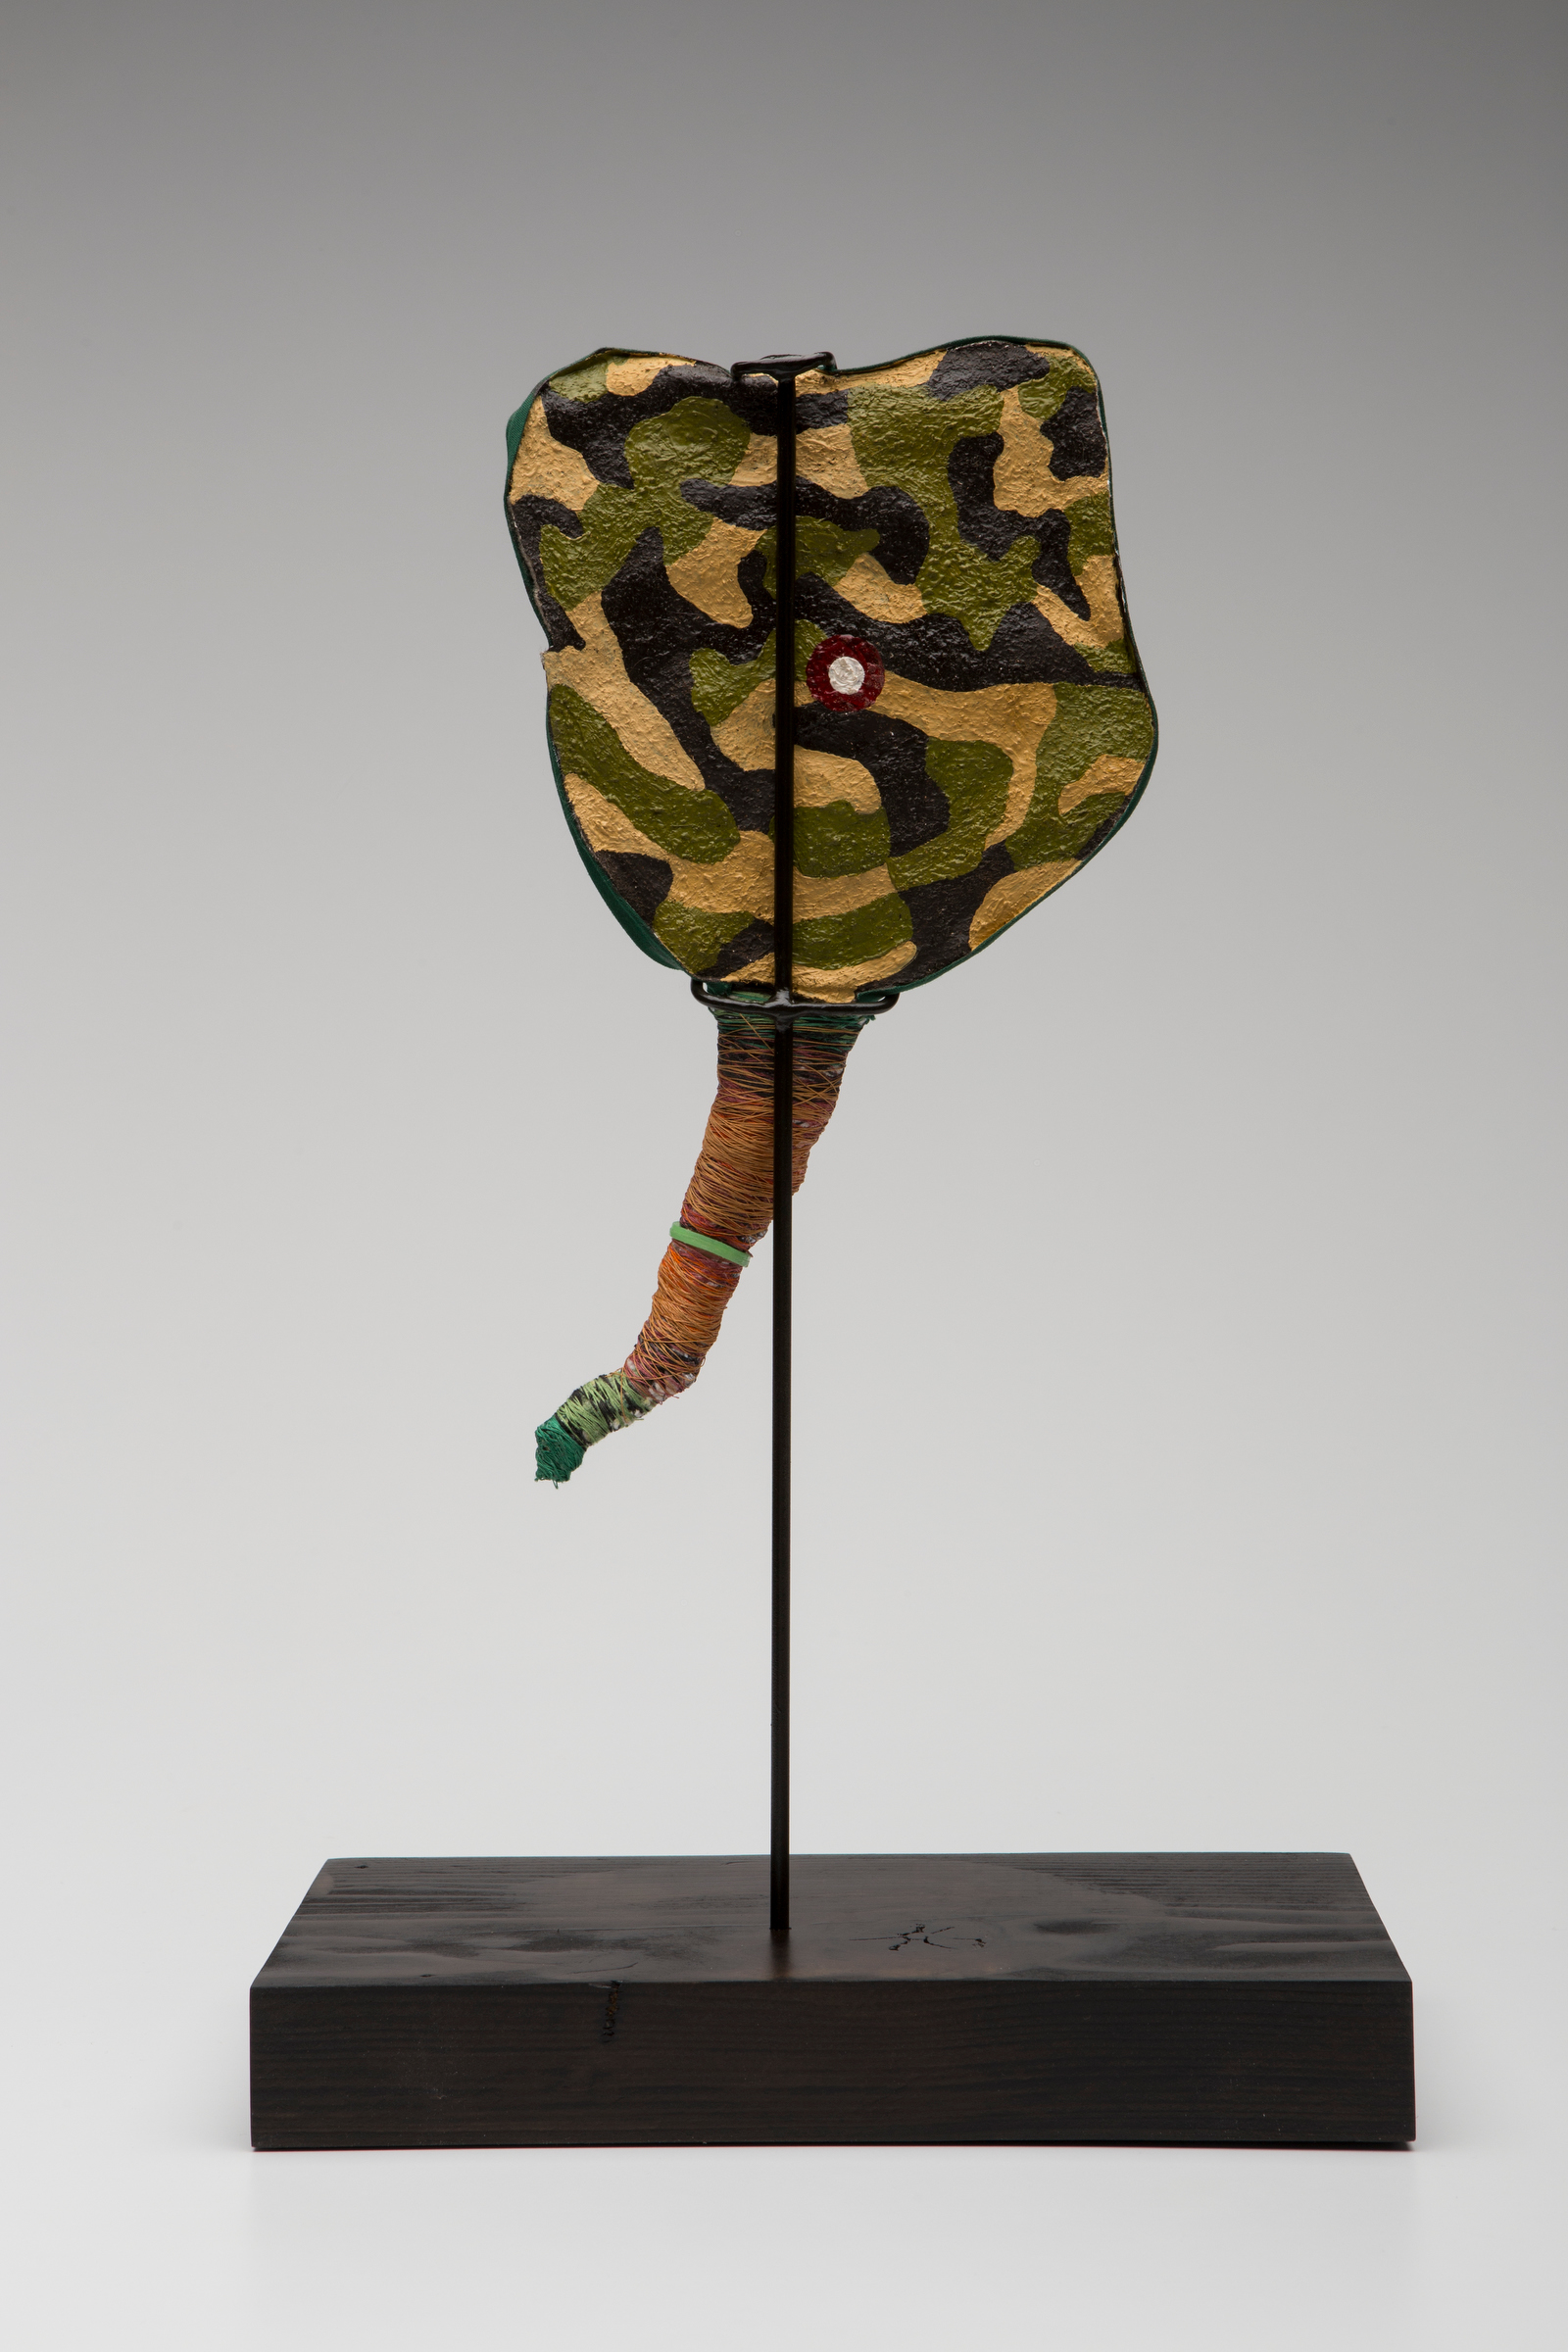 Prayer Paddle: Eros (back view) , mixed media, 10 by 7 inches, 2007-2014.